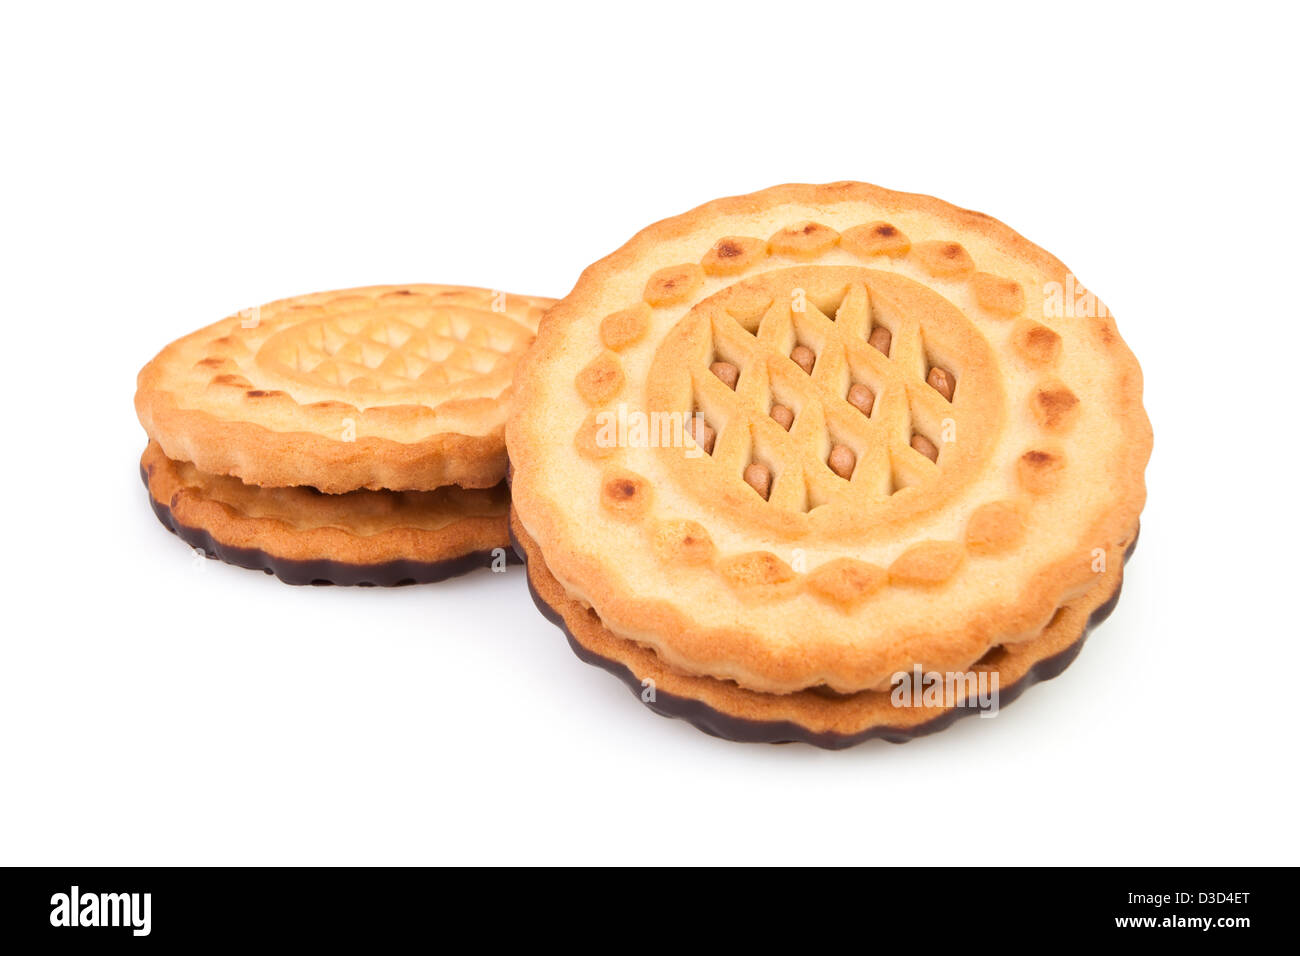 cookie two on white background - Stock Image